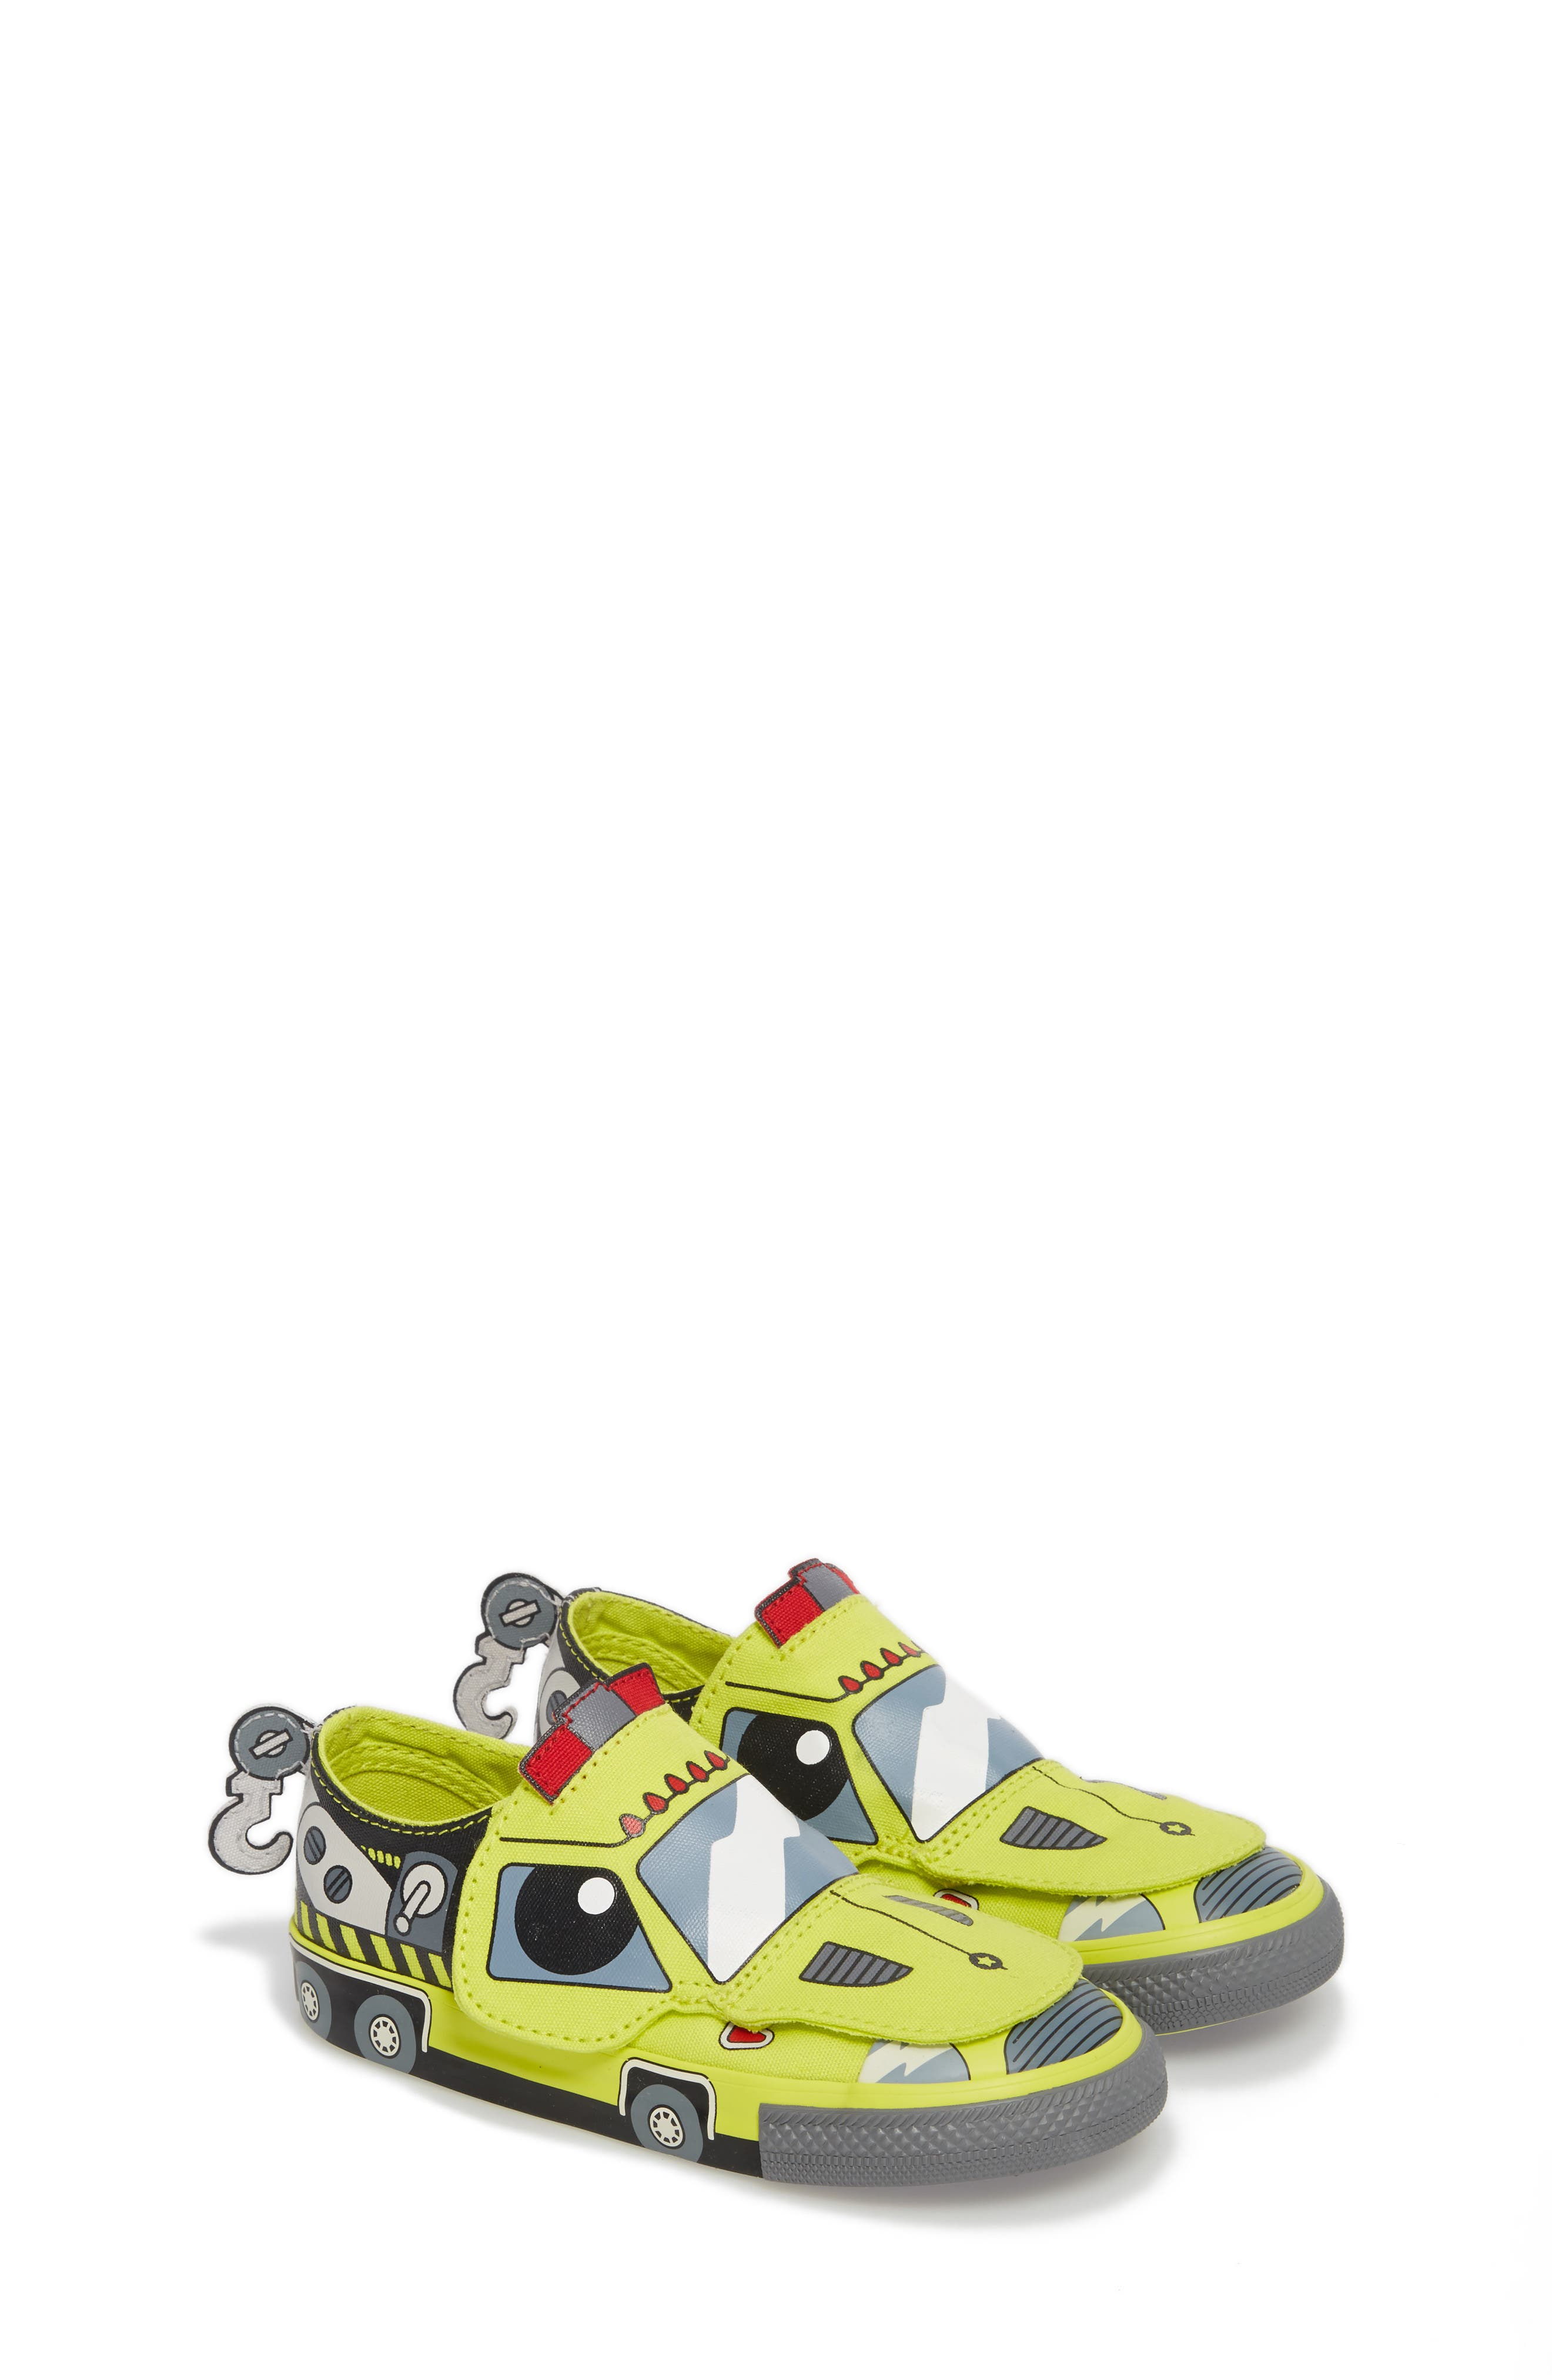 Chuck Taylor<sup>®</sup> All Star<sup>®</sup> Creatures Slip-On Sneaker,                             Main thumbnail 3, color,